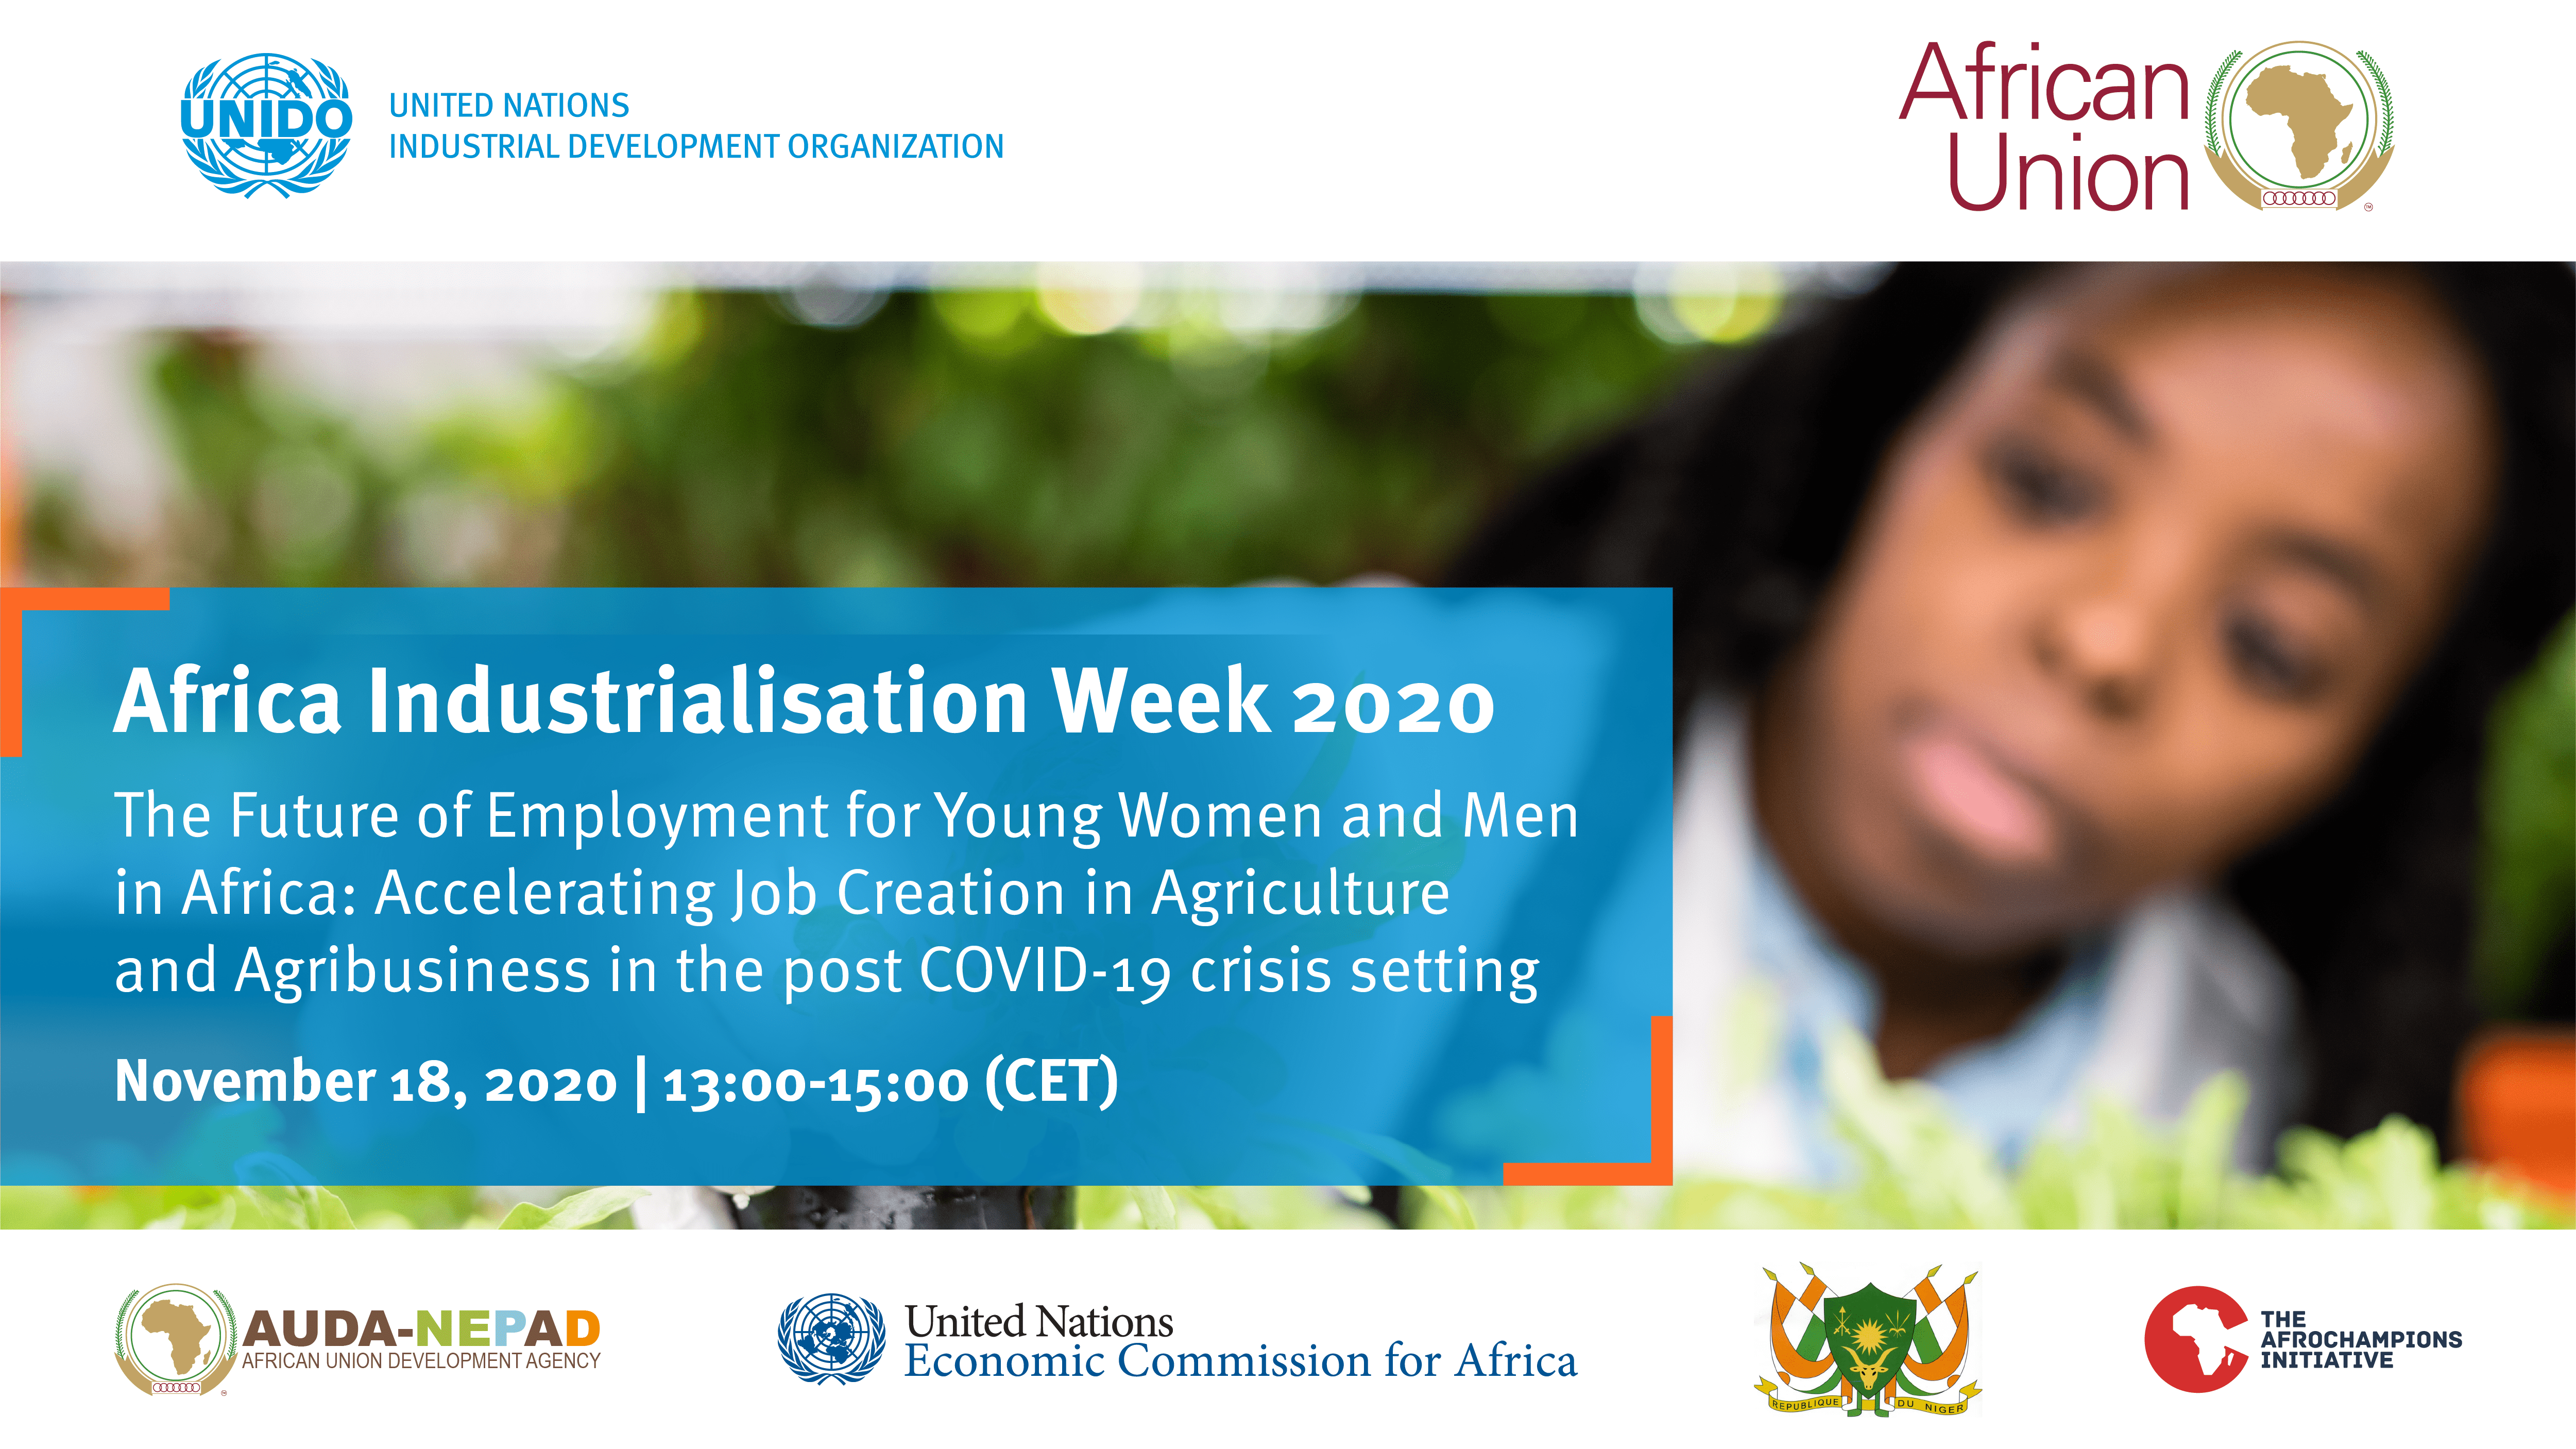 AIW2020 - The Future of Employment for Young Women and Men in Africa: Accelerating Job Creation in Agriculture and Agribusiness in the post COVID-19 crisis setting